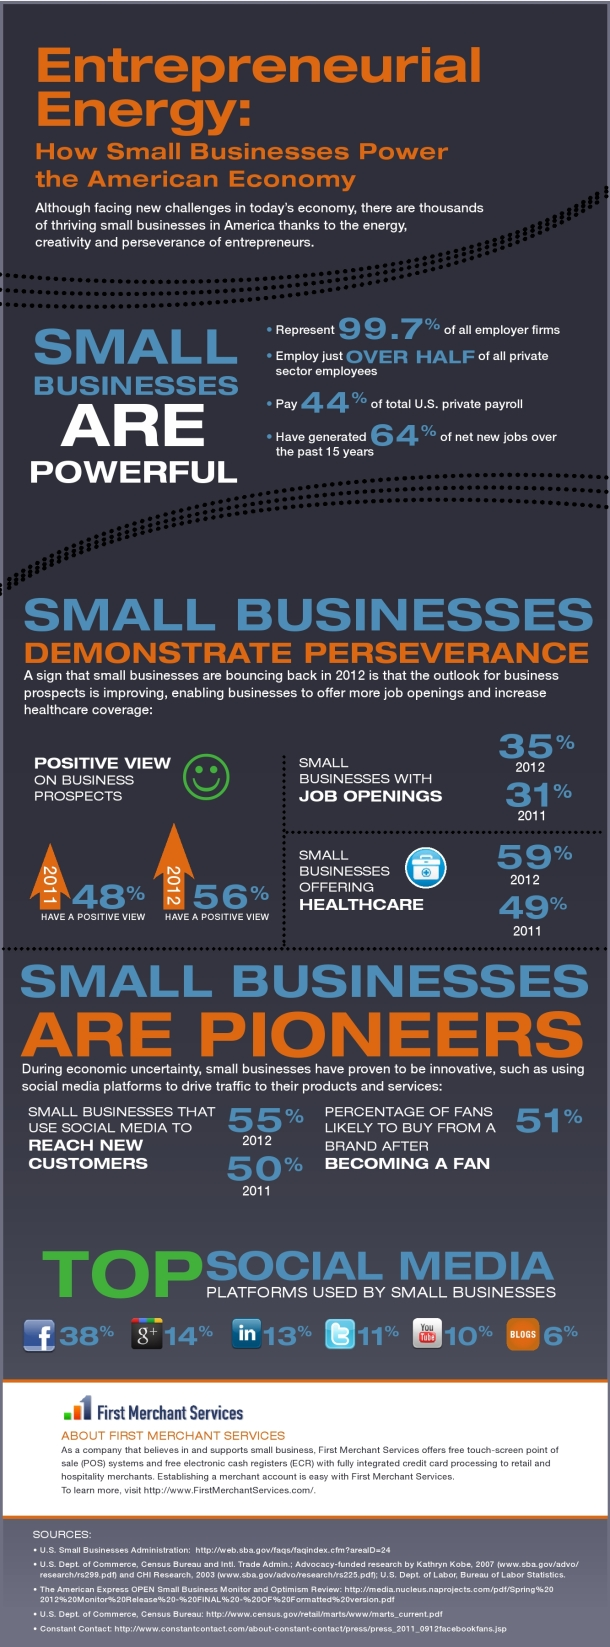 How Small Businesses Power the American Economy